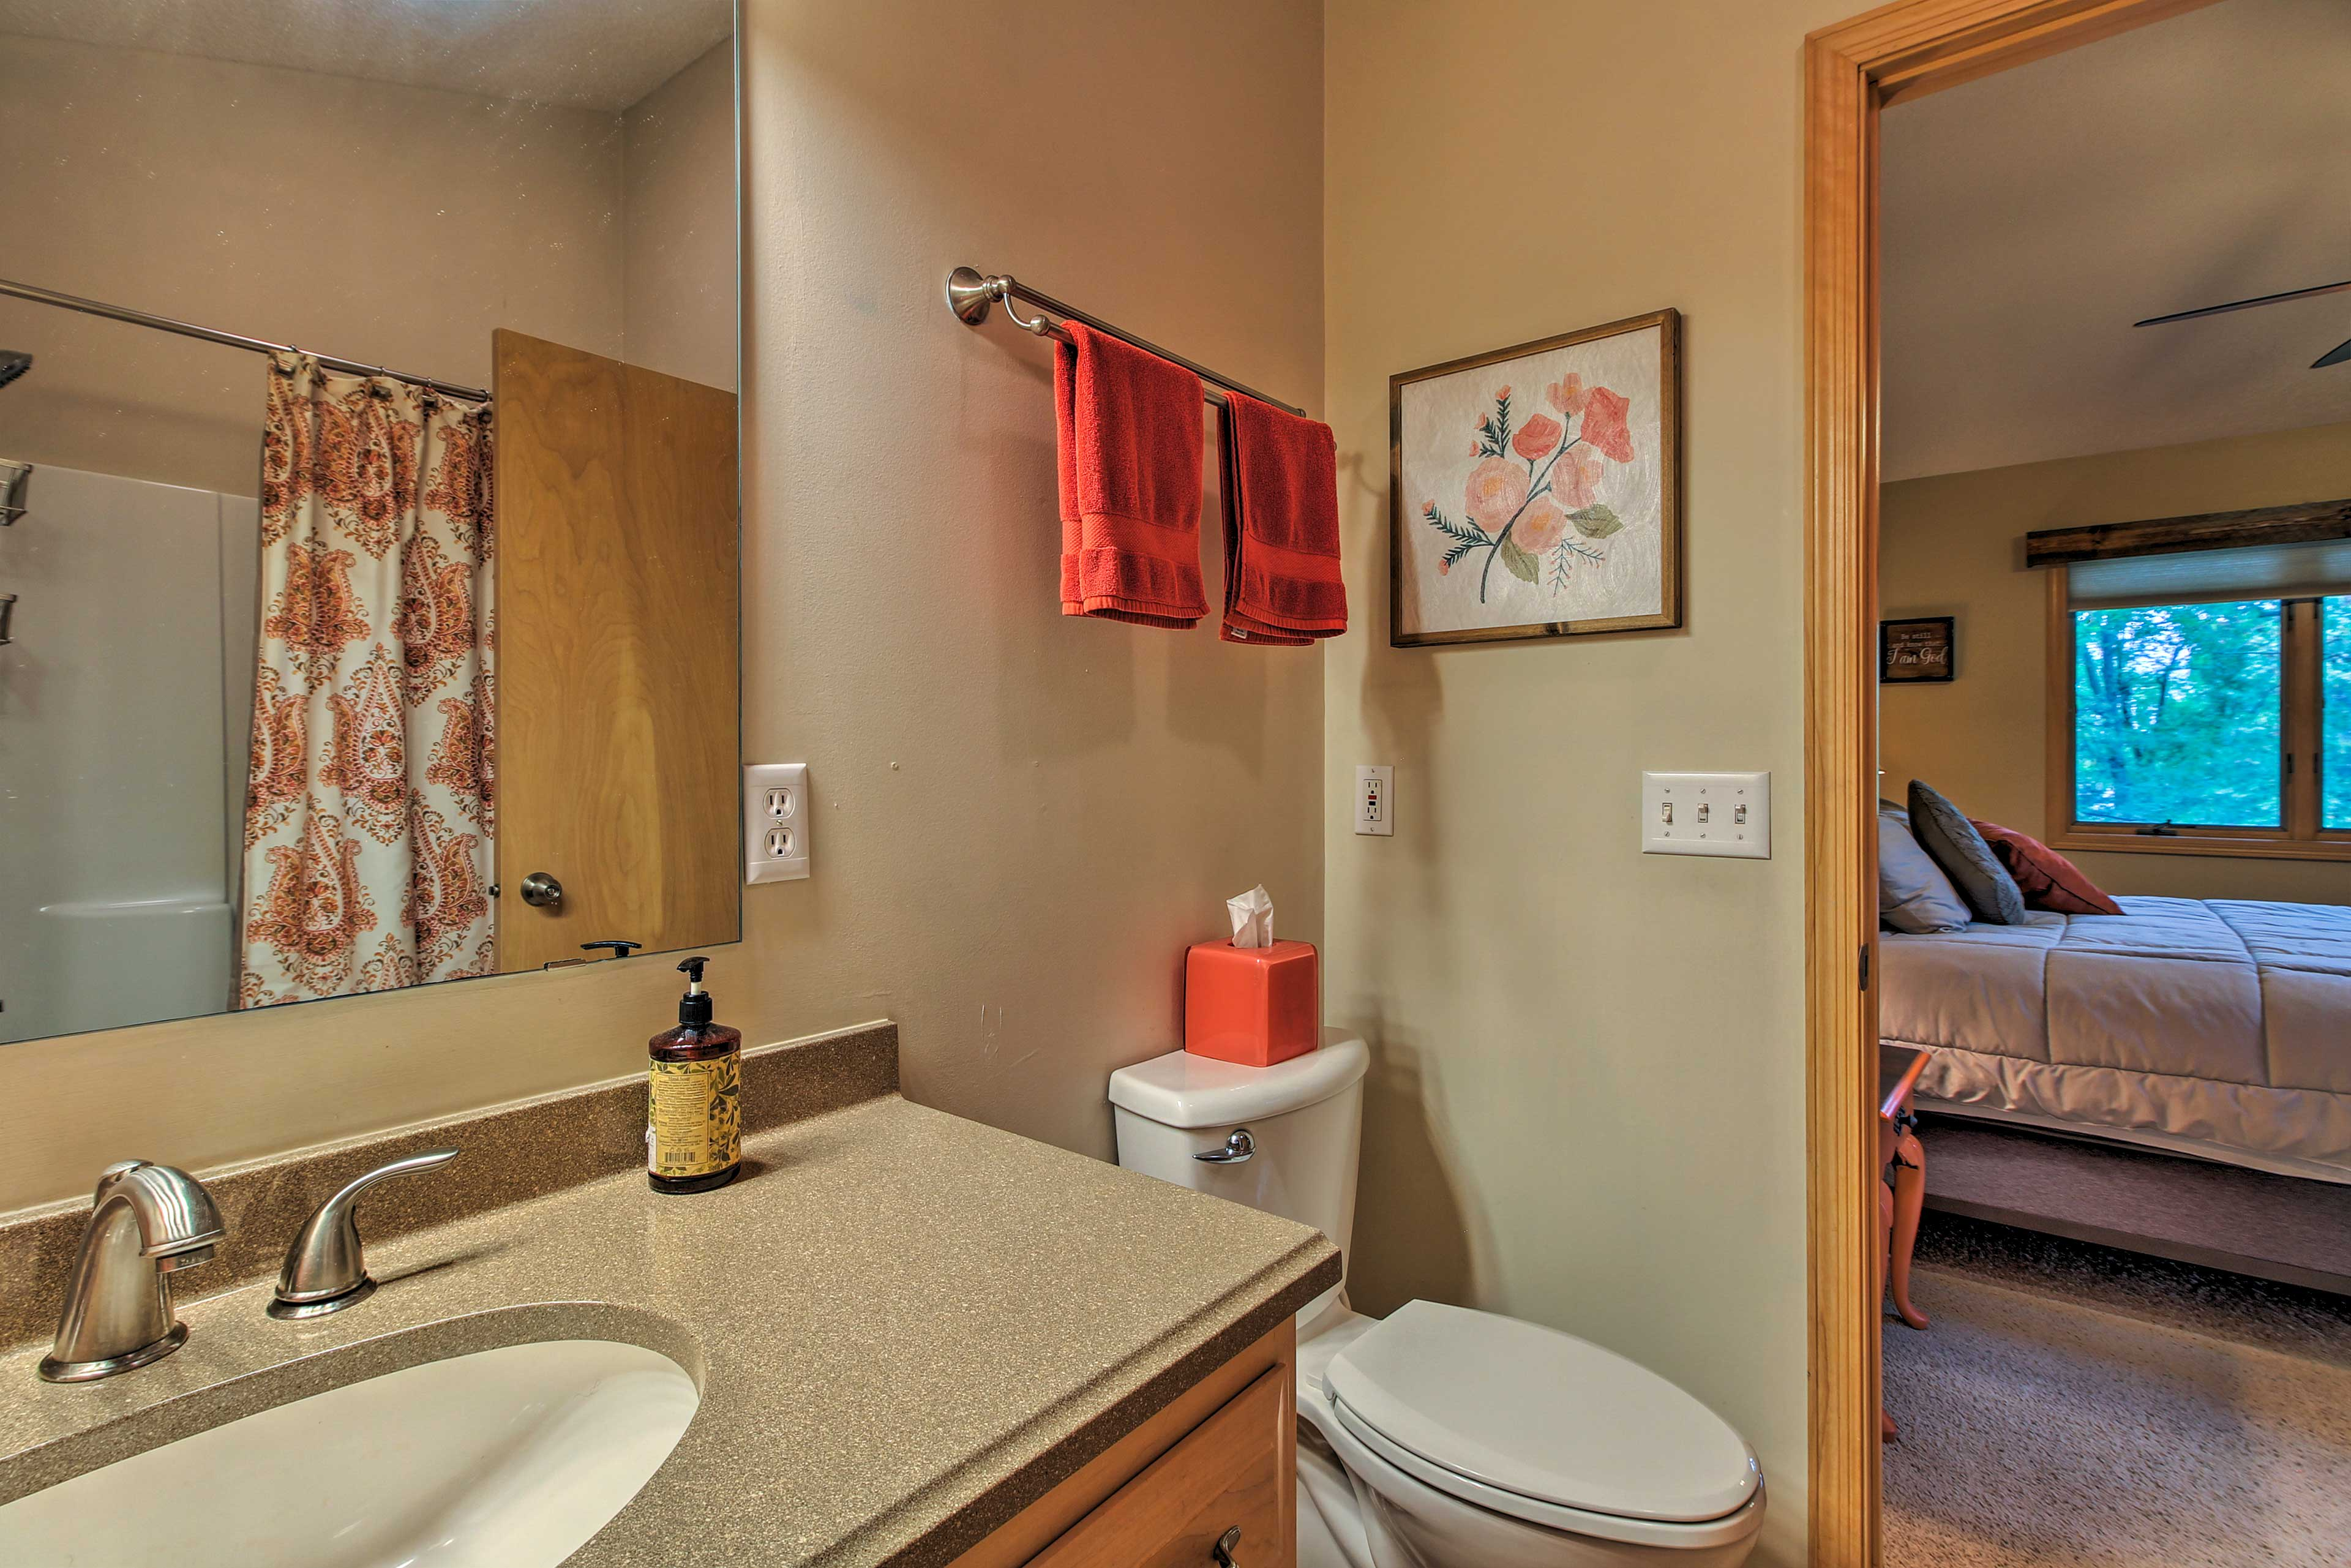 This home comes stocked with towels, linens, bath soap, and other essentials.